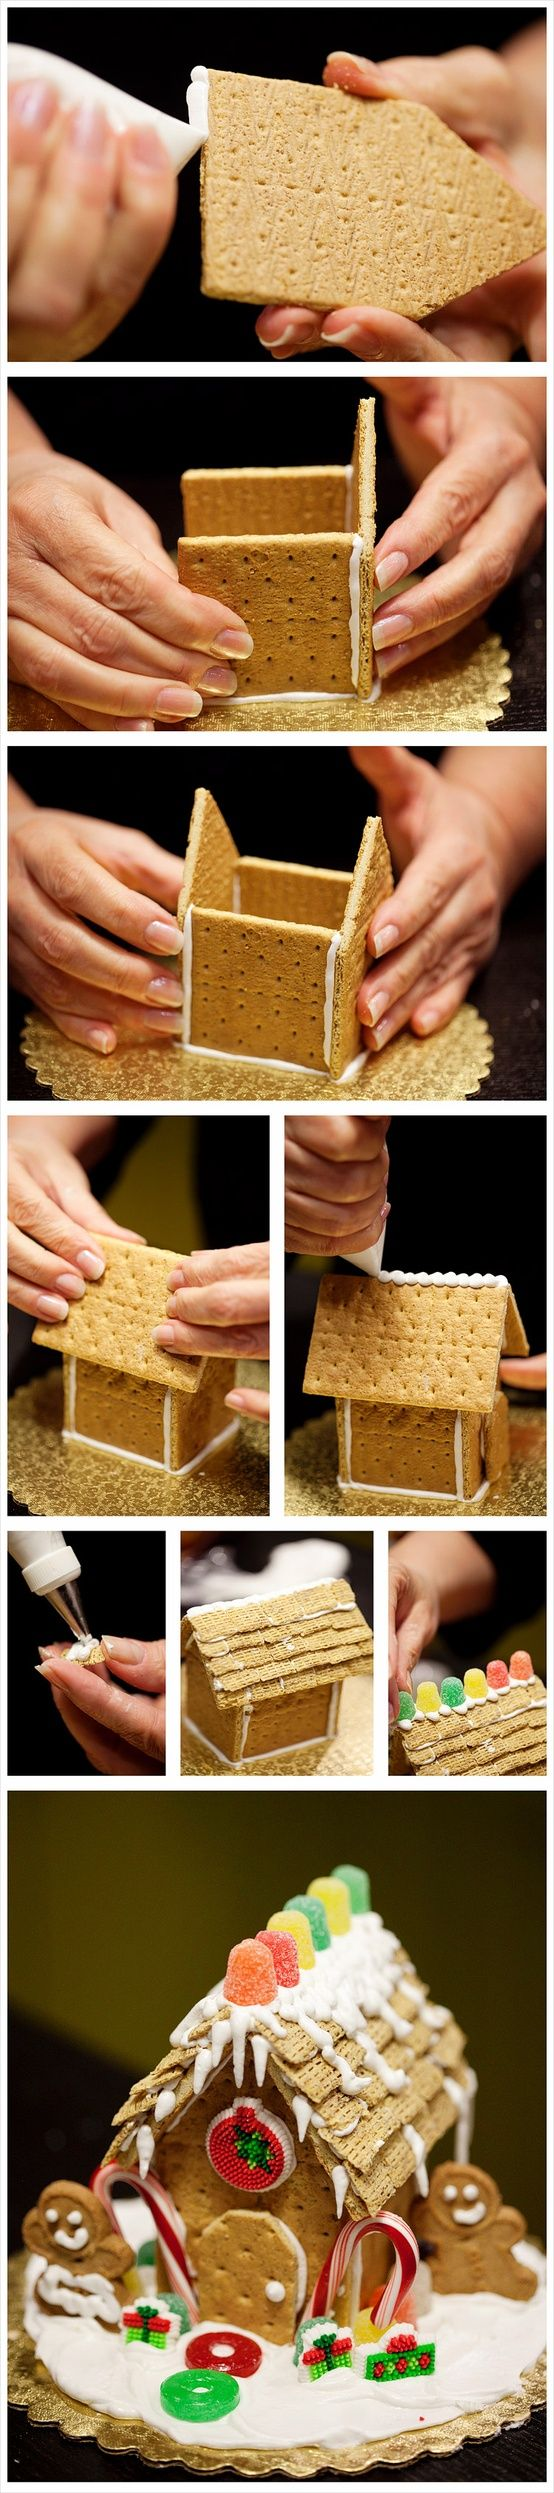 Less cutting than usual...DIY: Gingerbread House made out of graham crackers